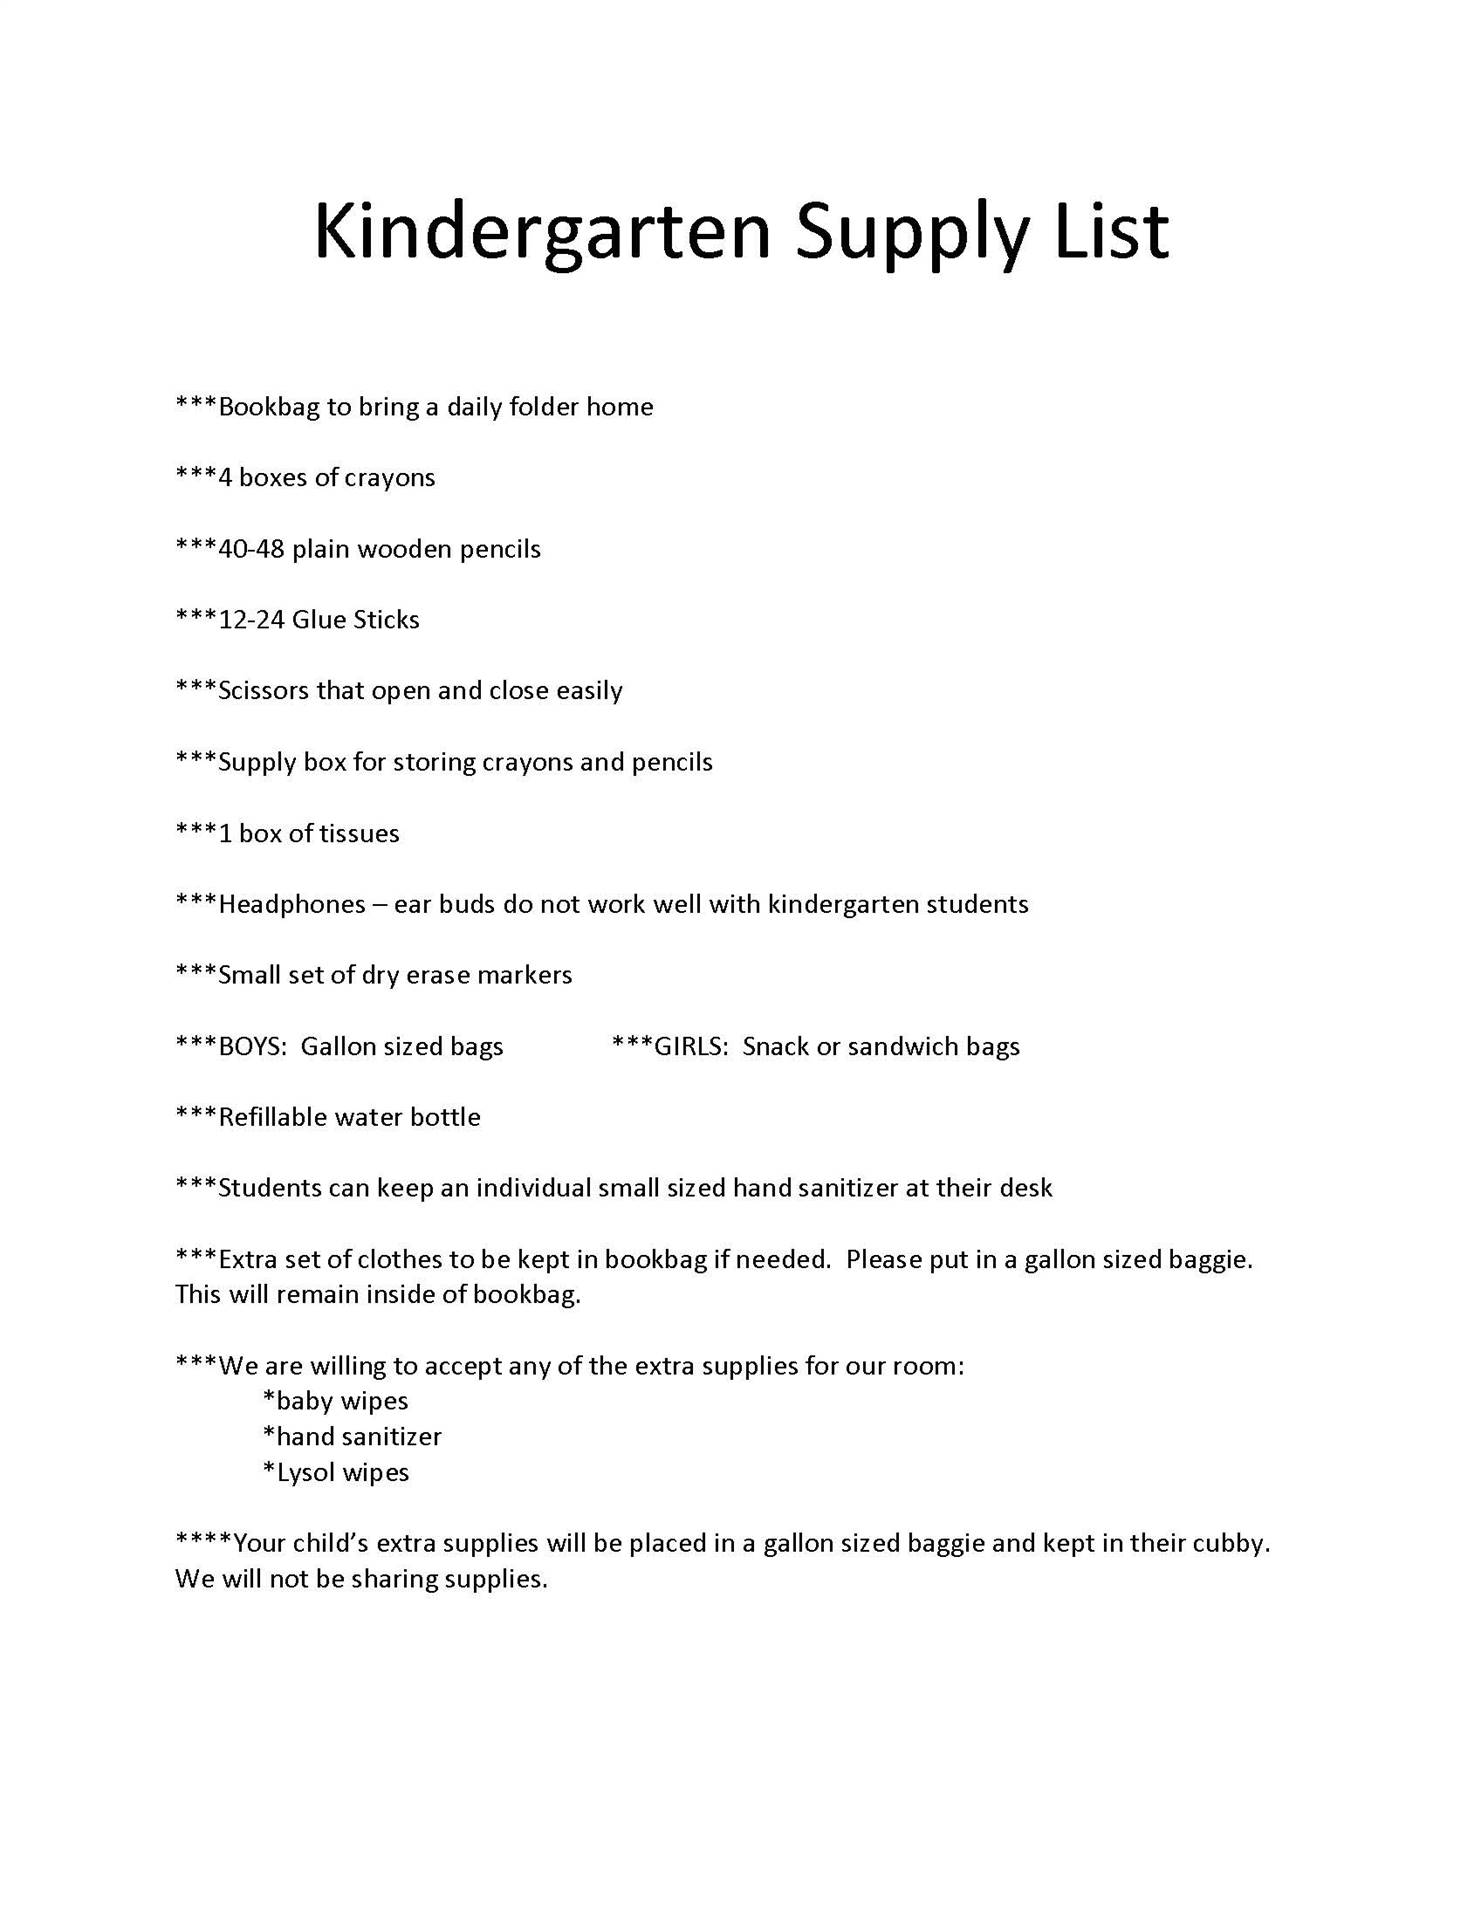 South Kindergarten Supply List